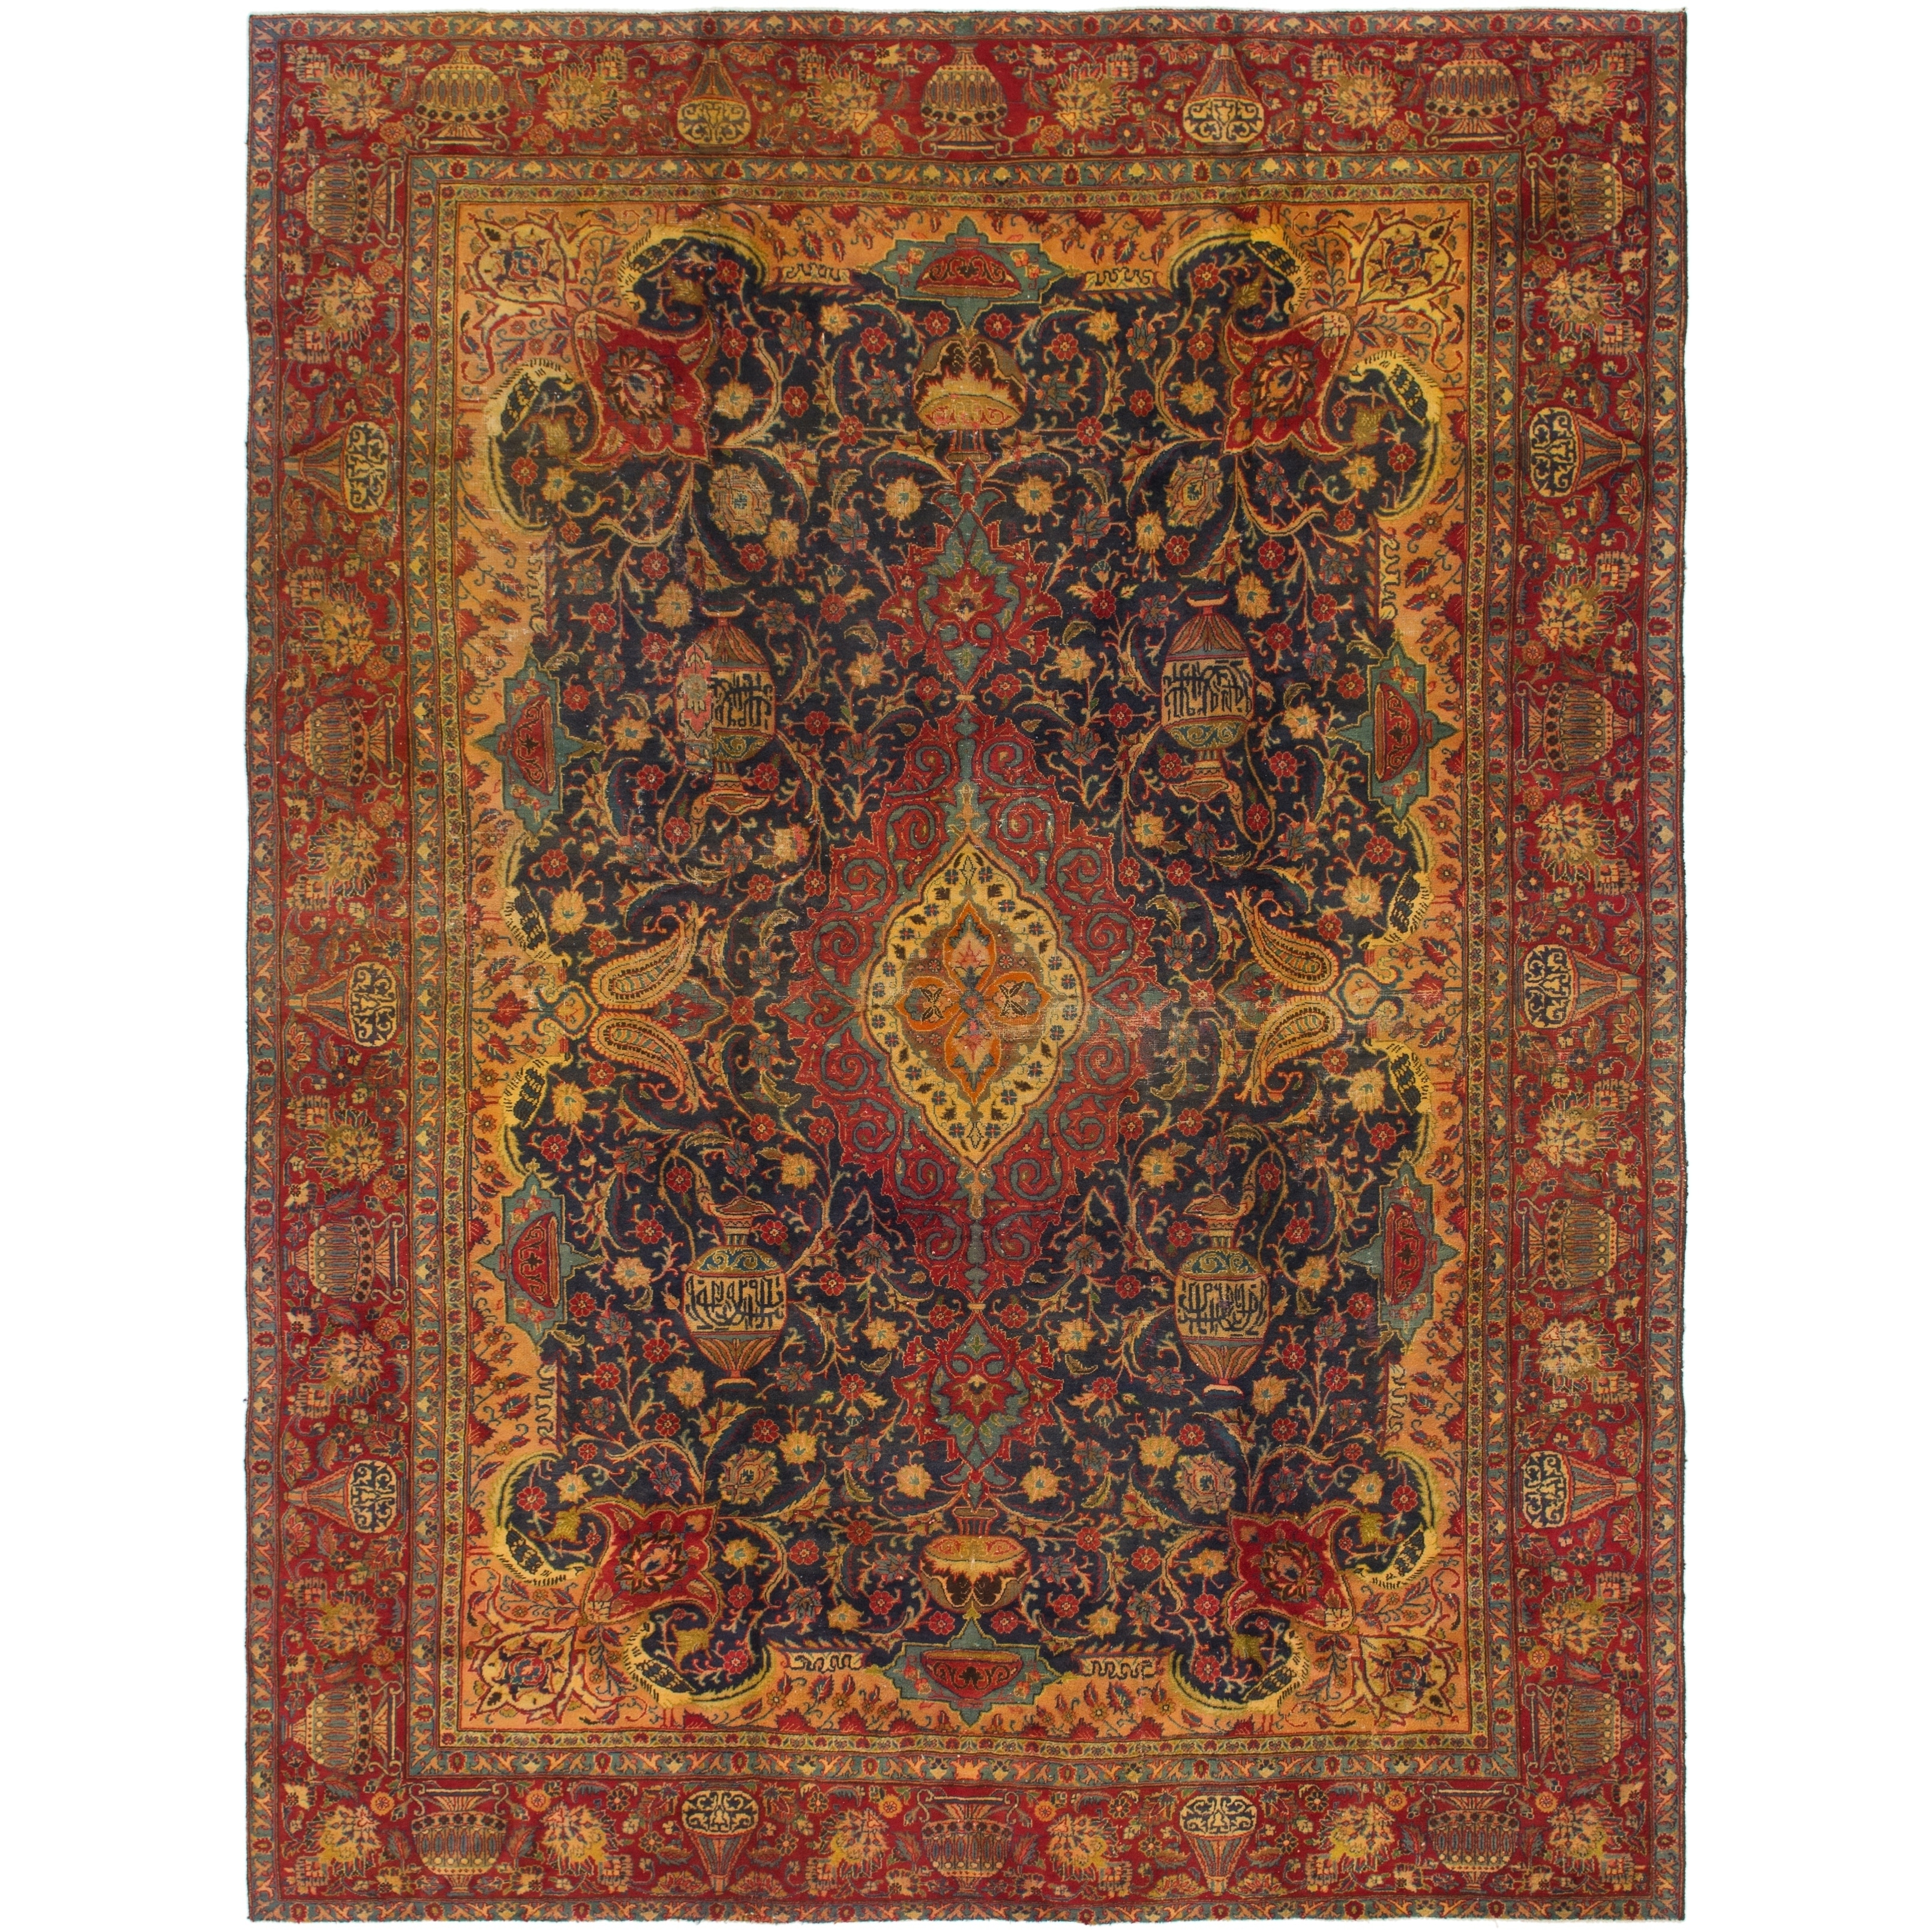 Hand Knotted Kashmar Antique Wool Area Rug - 9 2 x 12 6 (Navy blue - 9 2 x 12 6)